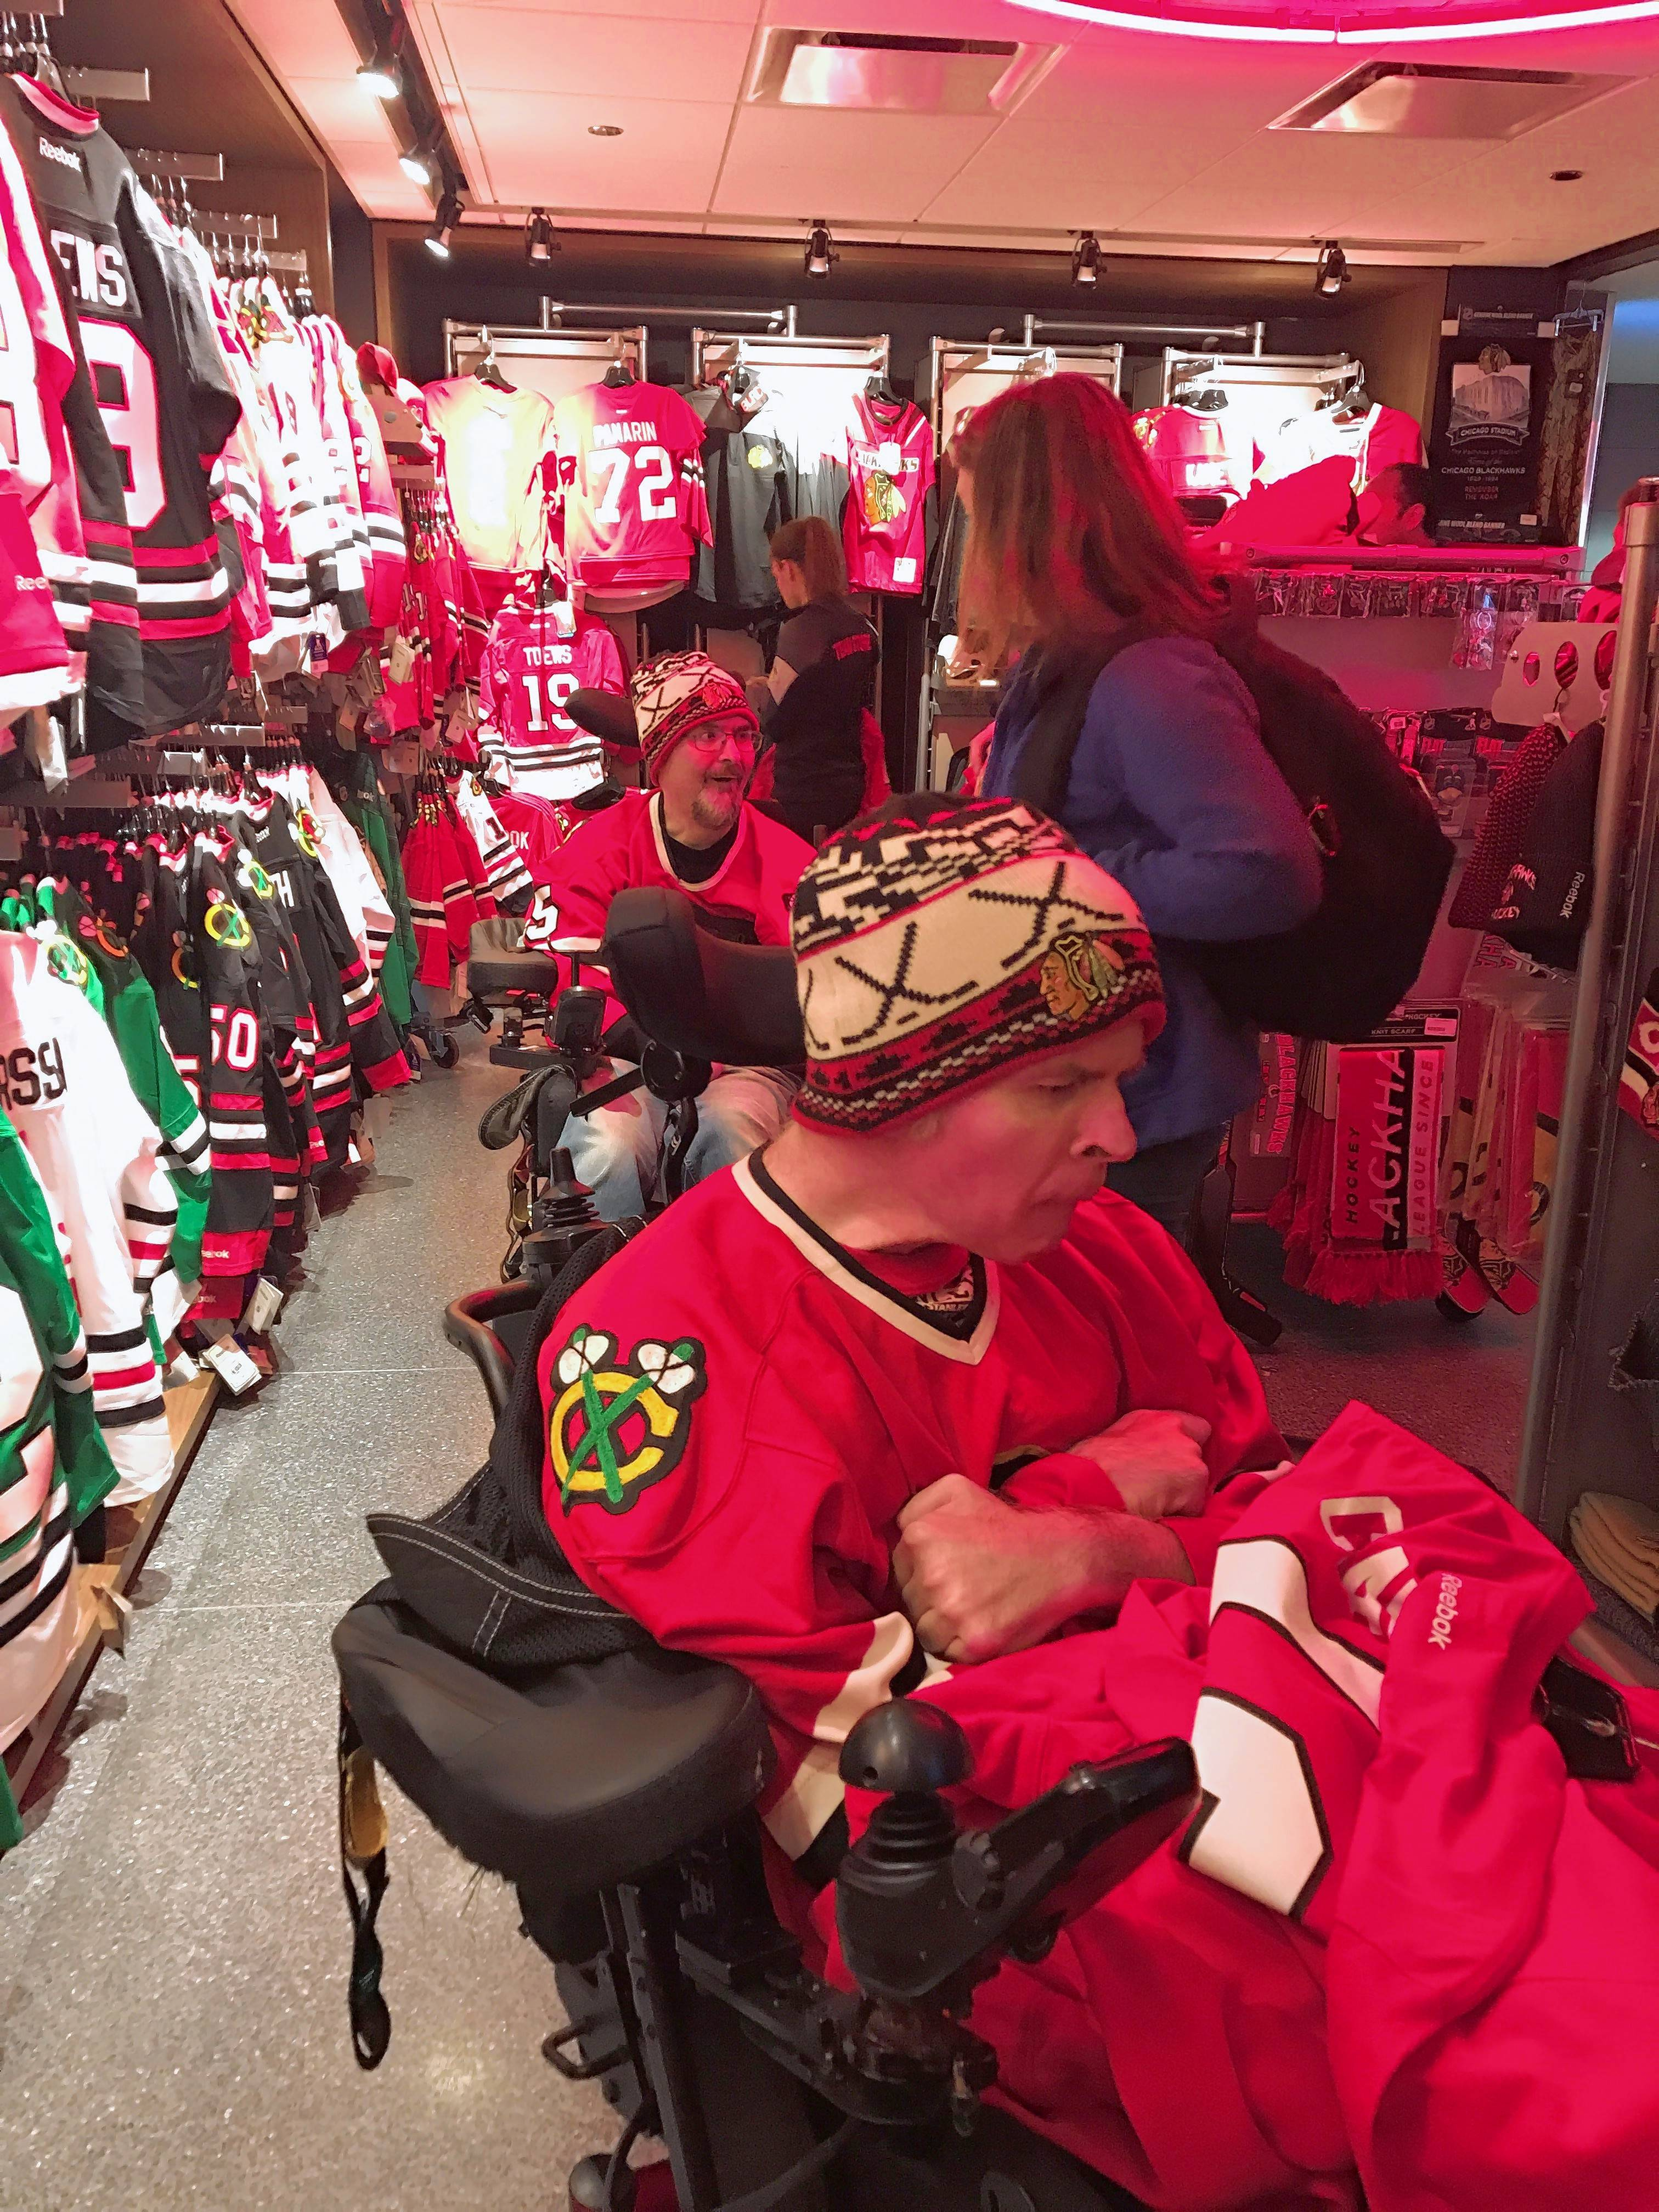 Marklund client and brothers Brad and Phil check out the selection of sports jerseys during the Oct. 4 Chicago Blackhawks game.